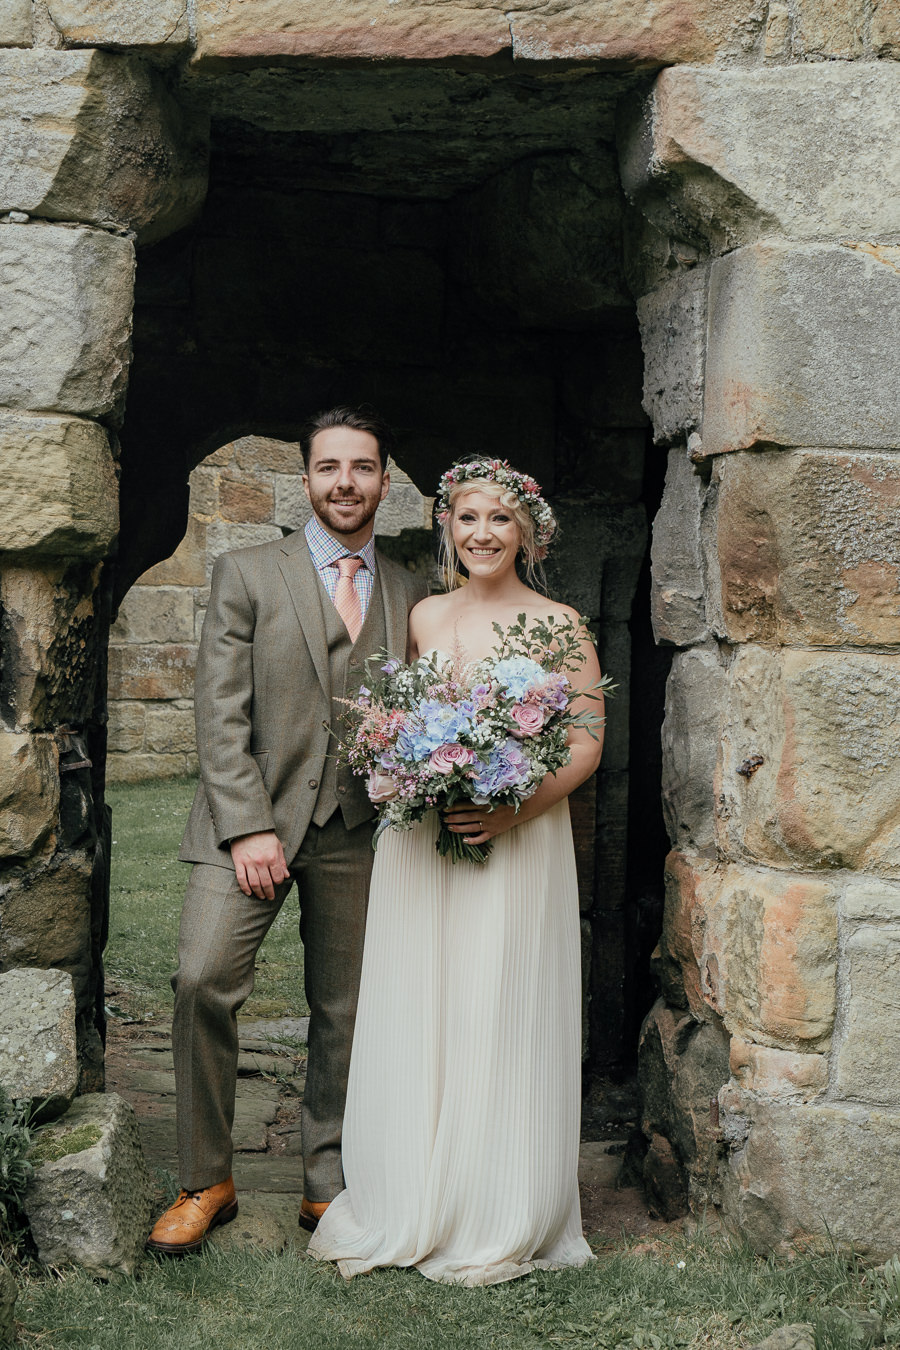 Rural English wedding style at Danby Castle, photo credit Rosanna Lilly Photography (2)